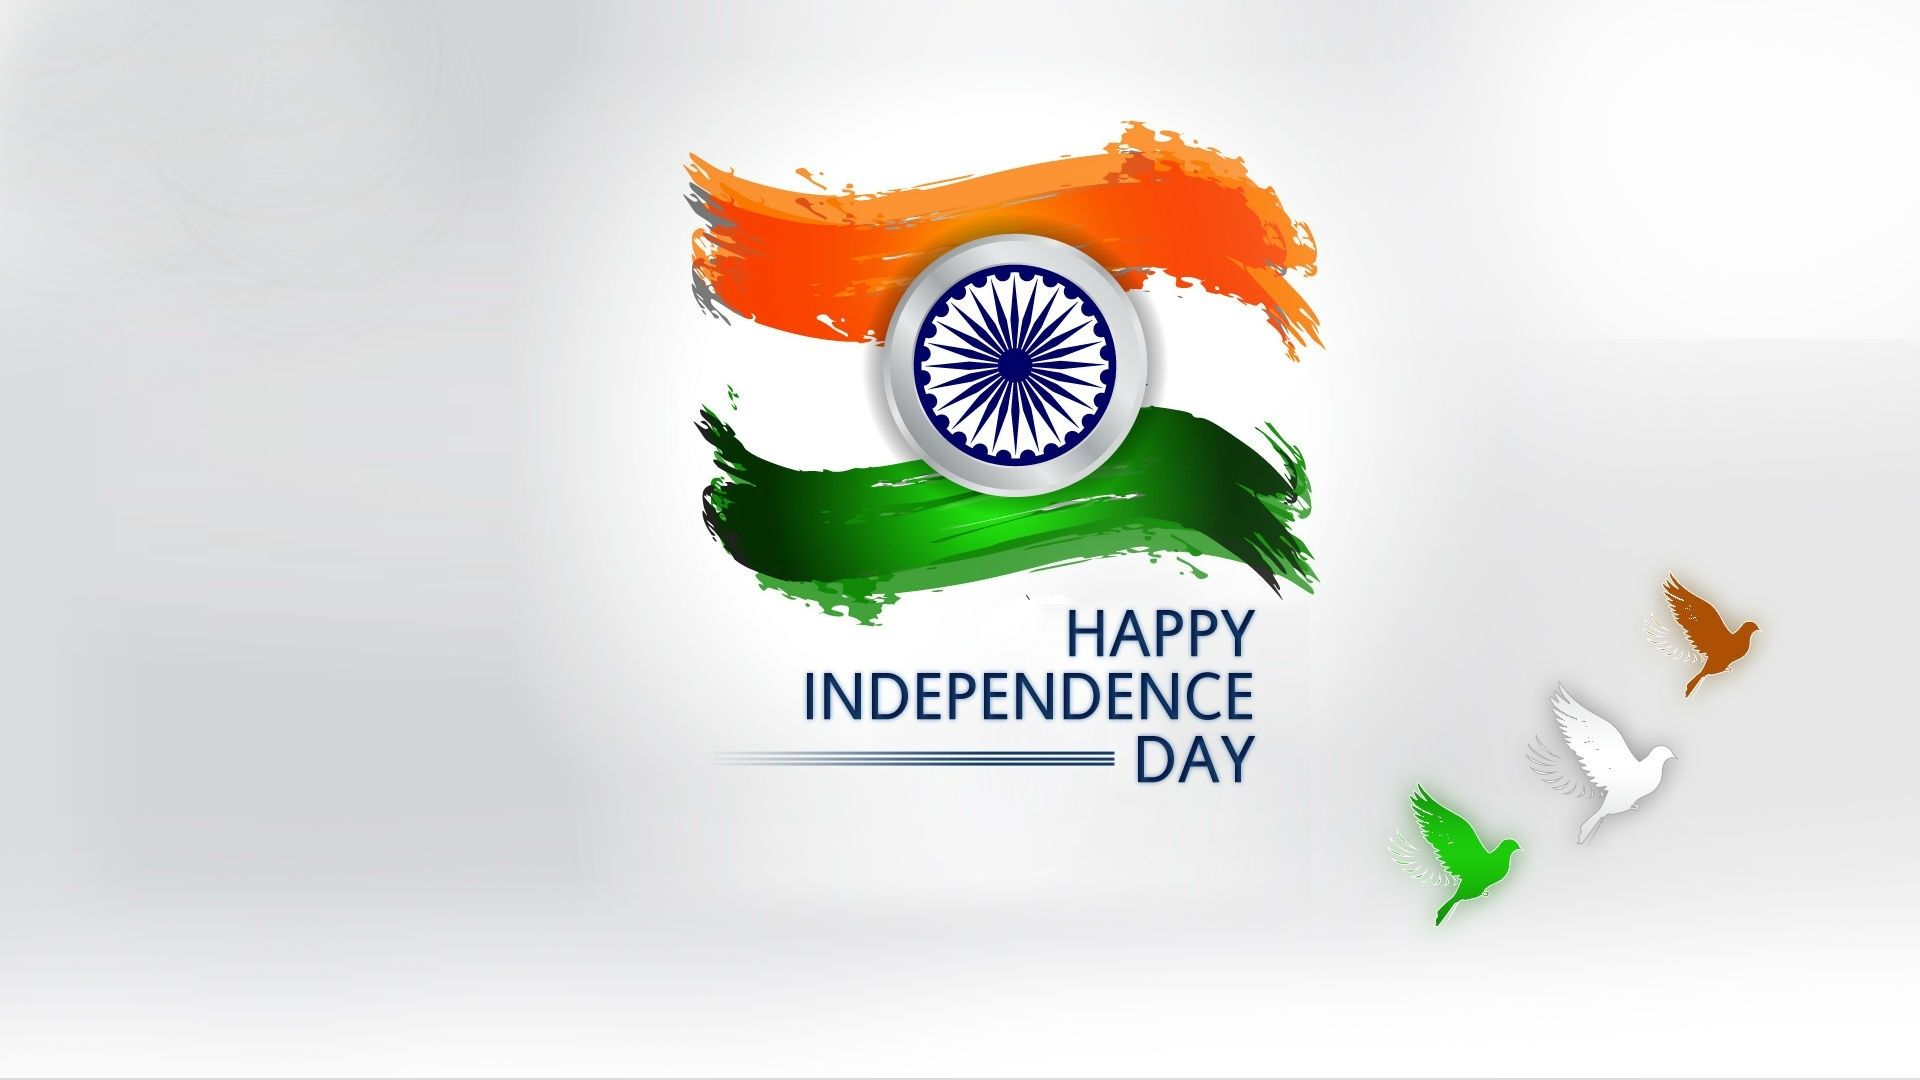 Happy Independence Day New Hd Pics Free Download Happy Independence Day Wishes Happy Independence Day Wallpaper Independence Day Images